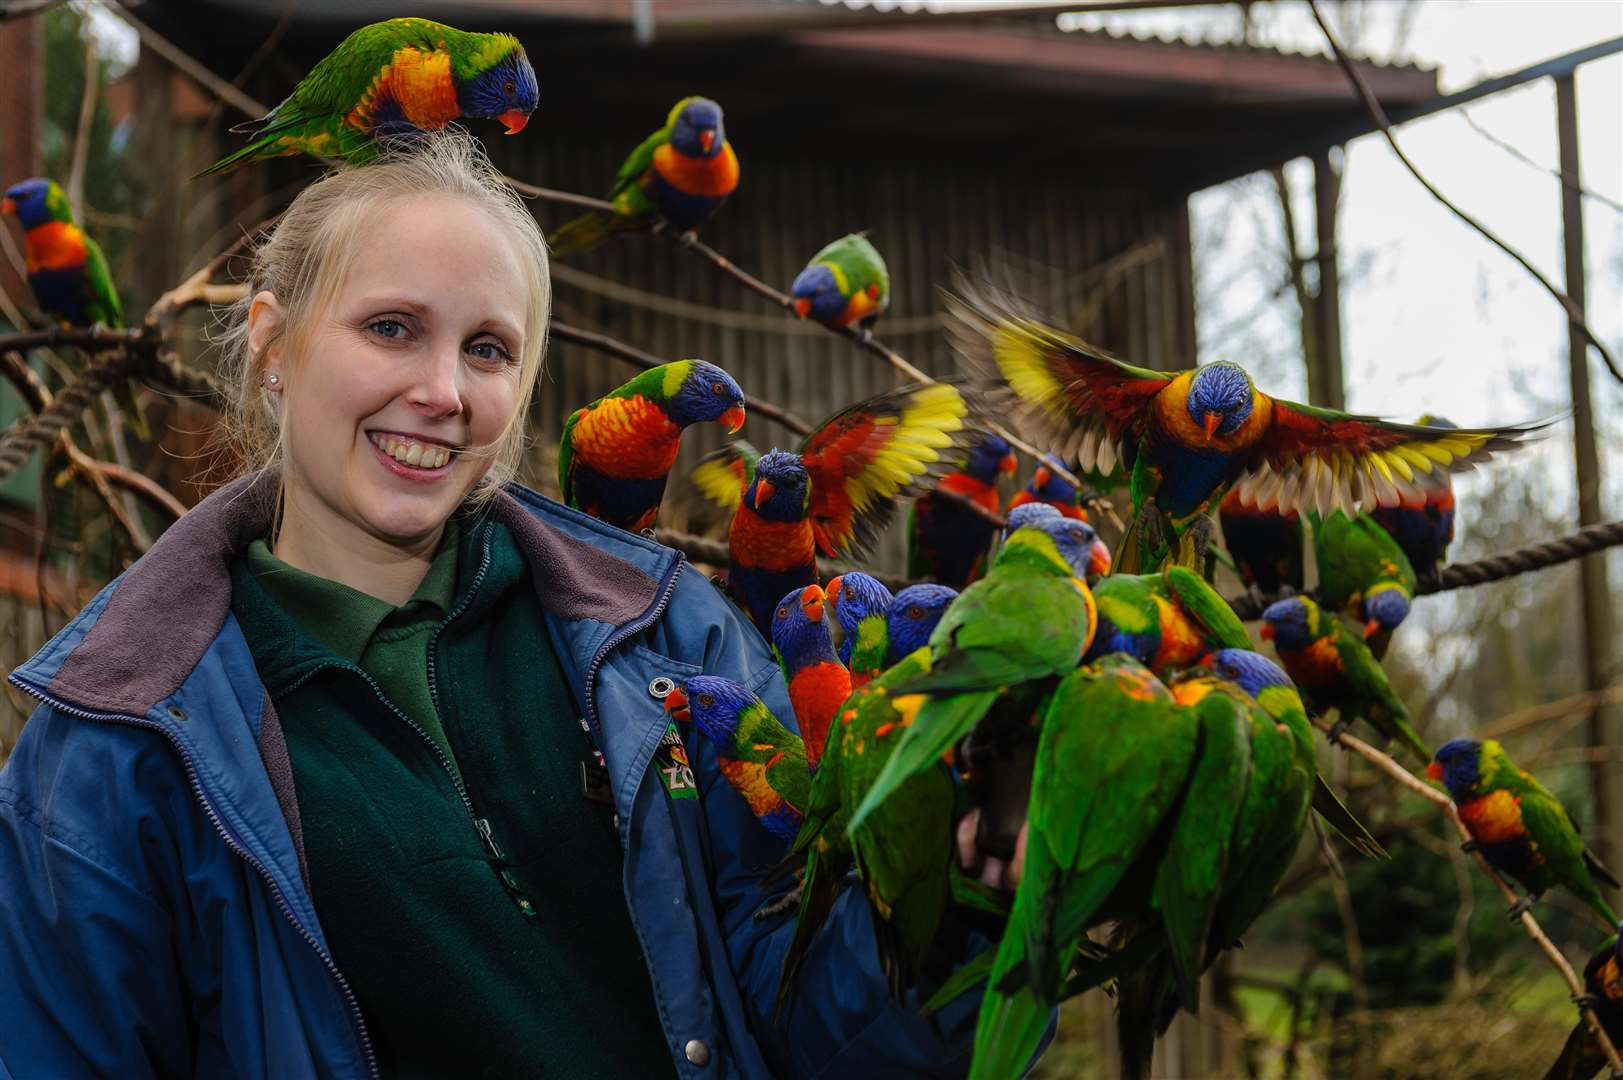 WHO'S A PRETTY BOY?: Michelle Lawrence feeds some lorikeets. Picture by Mark Bullimore Photography.